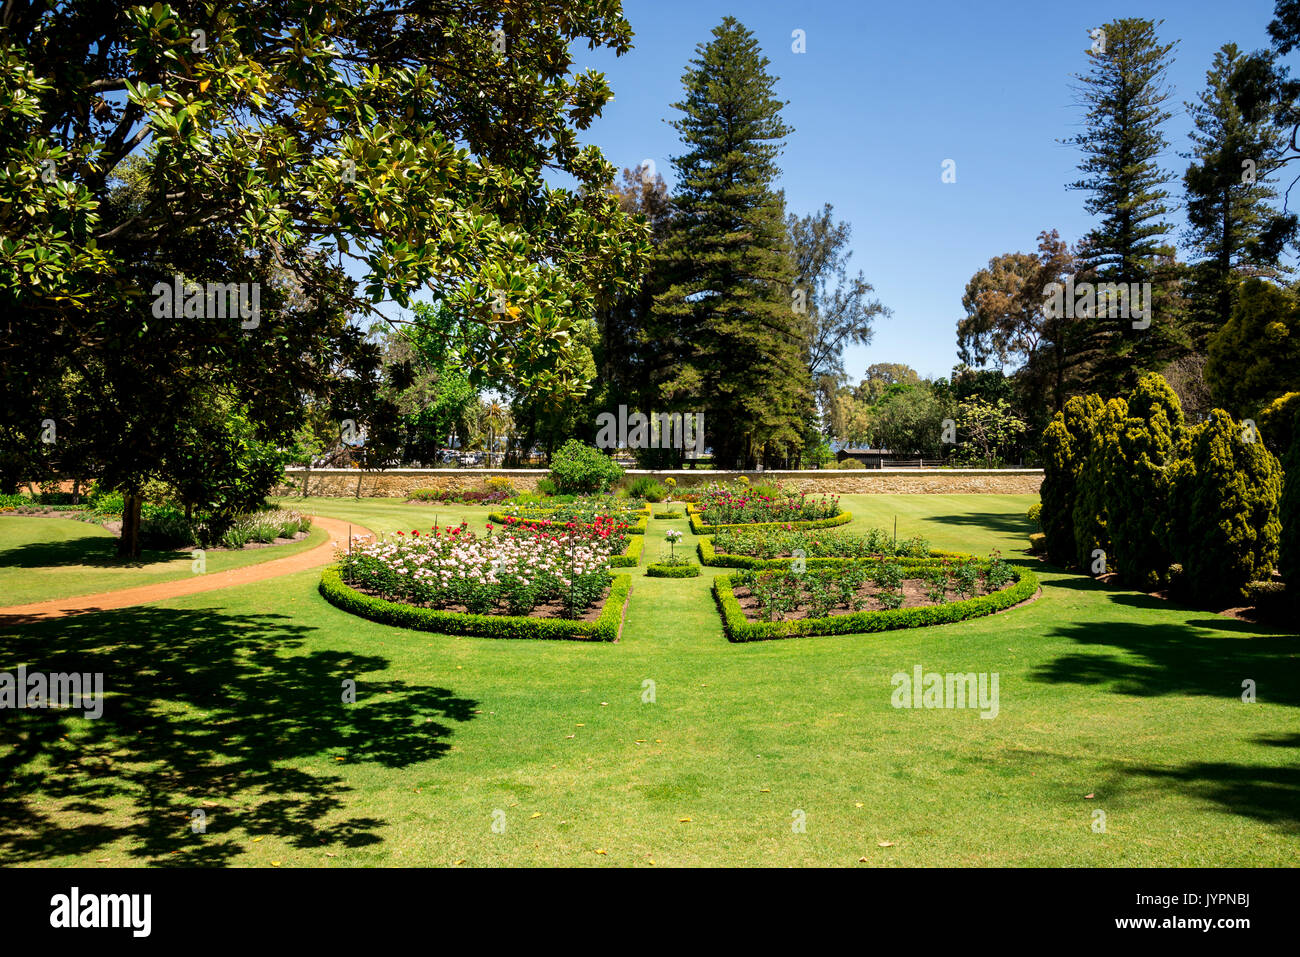 Landscaped Gardens With Flower Beds At Government House Residence In Perth  City, Western Australia